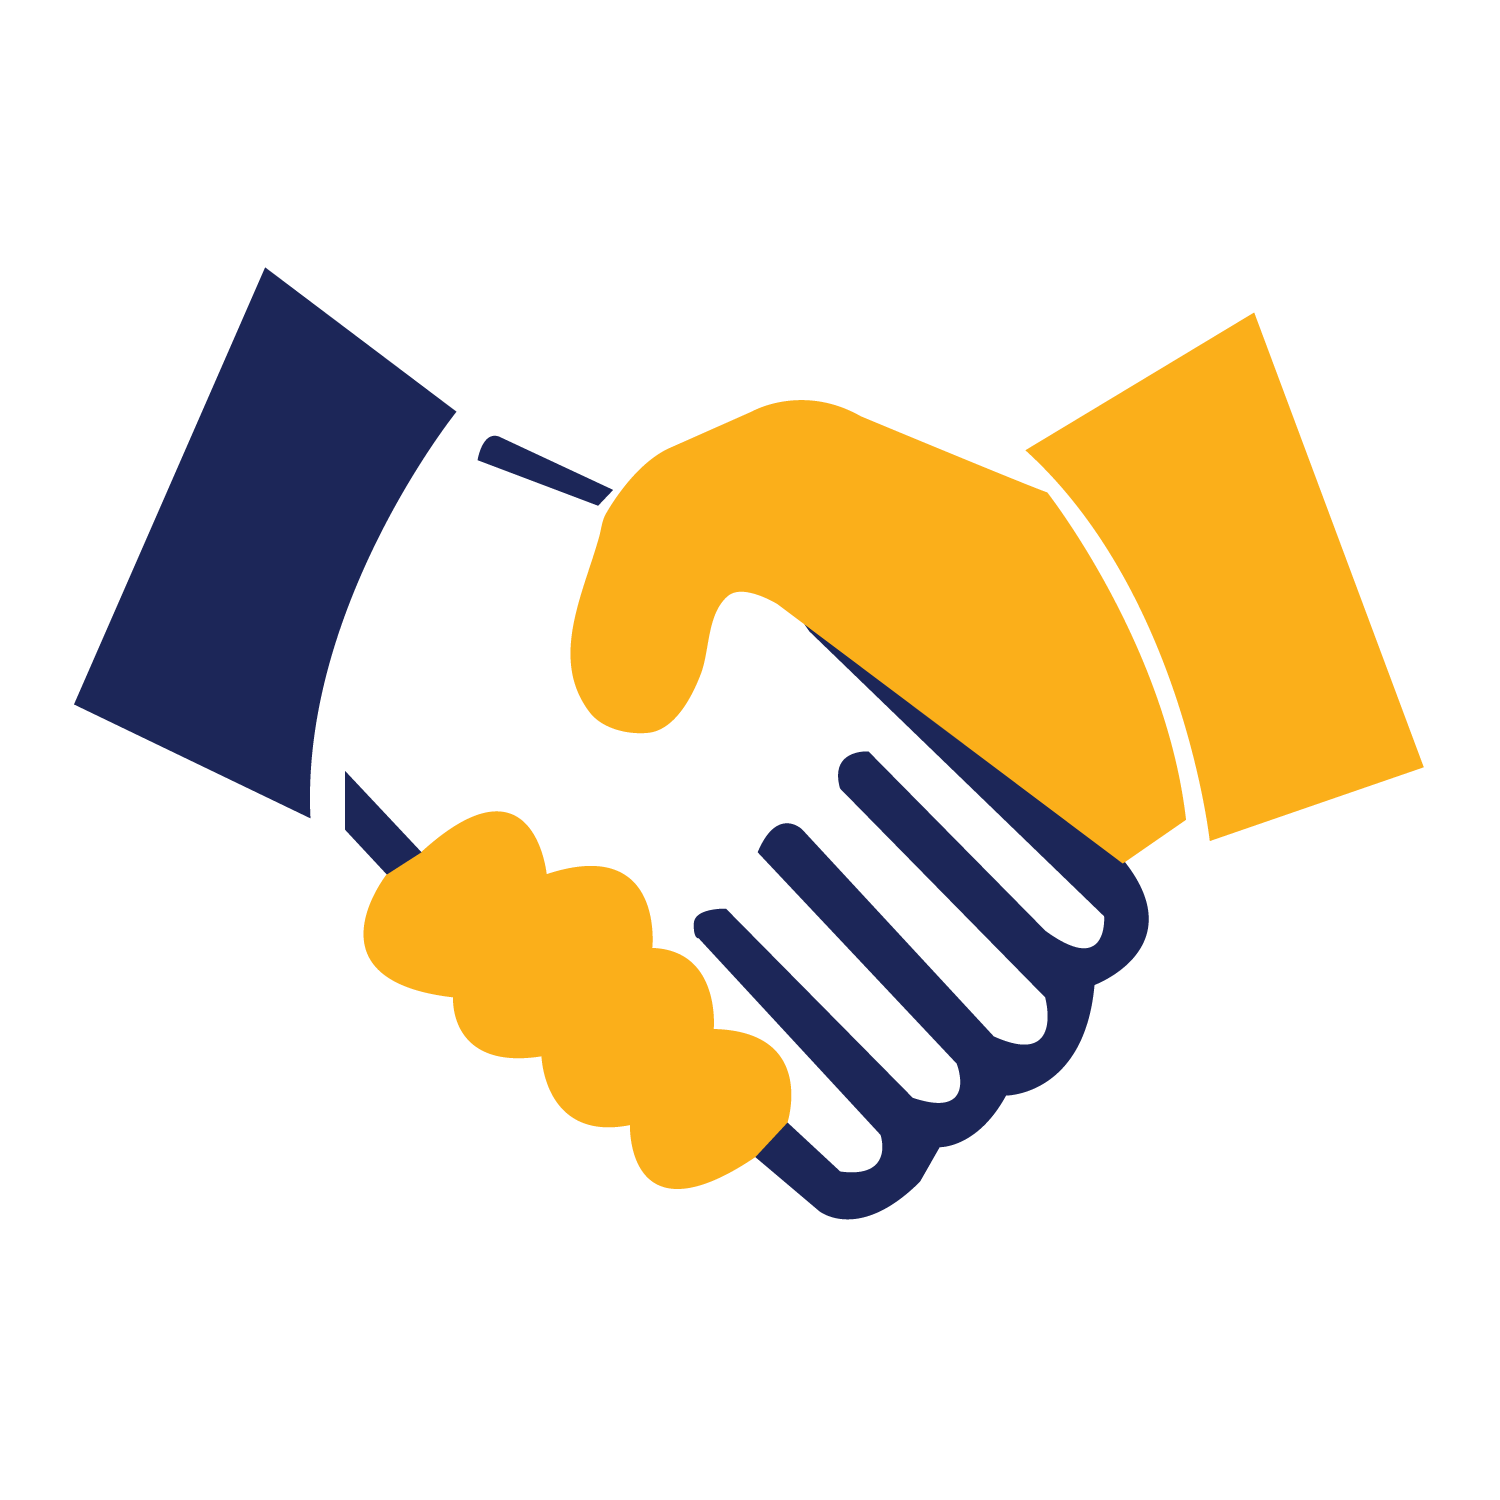 About us local government. Handshake clipart conflict